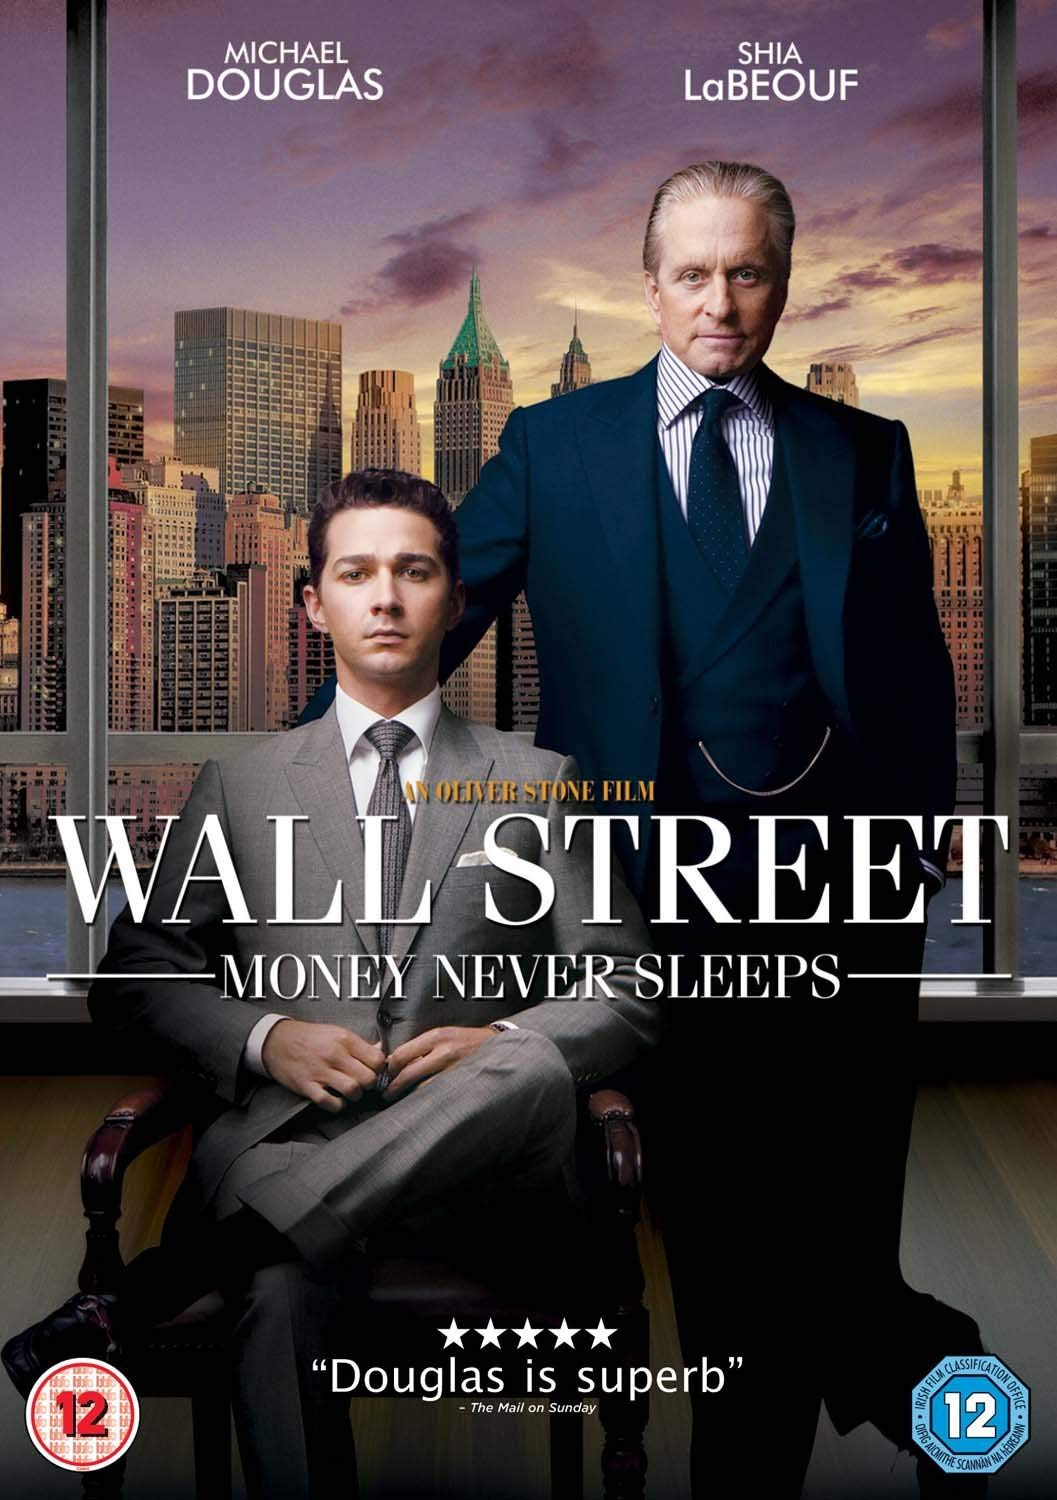 Entrepreneurship movies #23: Wall Street: Money Never Sleeps